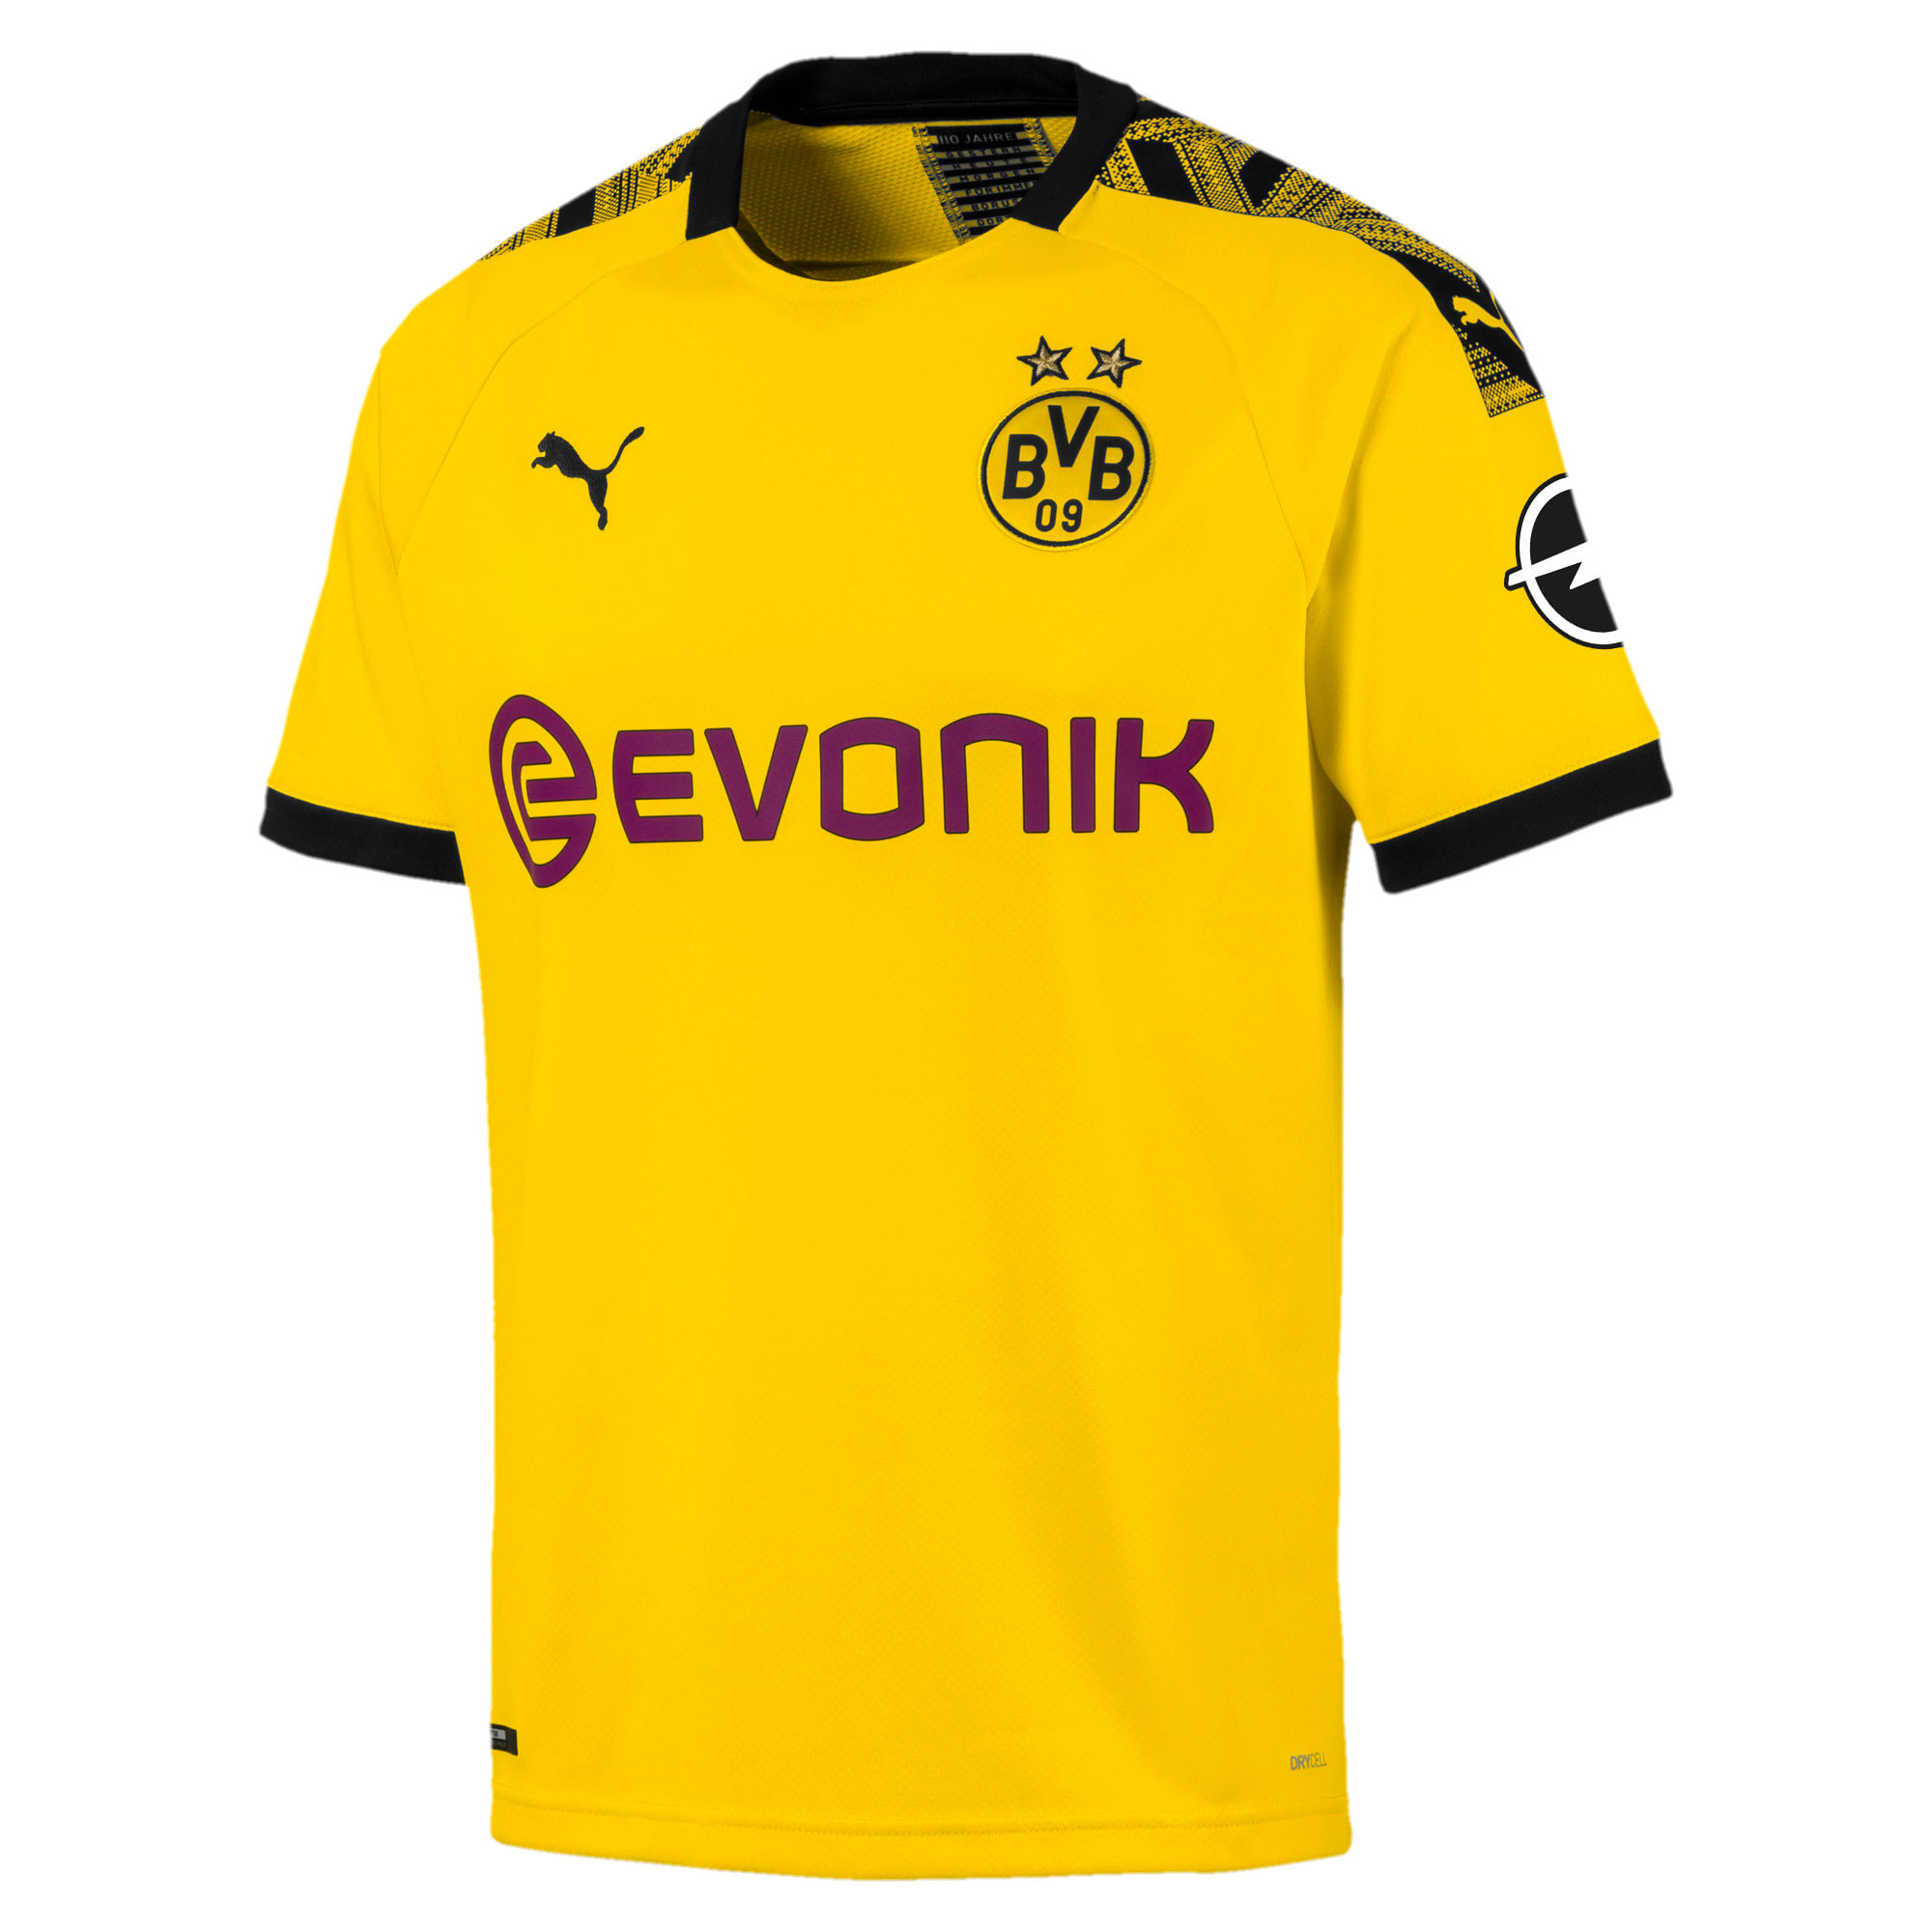 Thumbnail 1 of BVB Herren Replica Heimtrikot, Cyber Yellow-Puma Black, medium